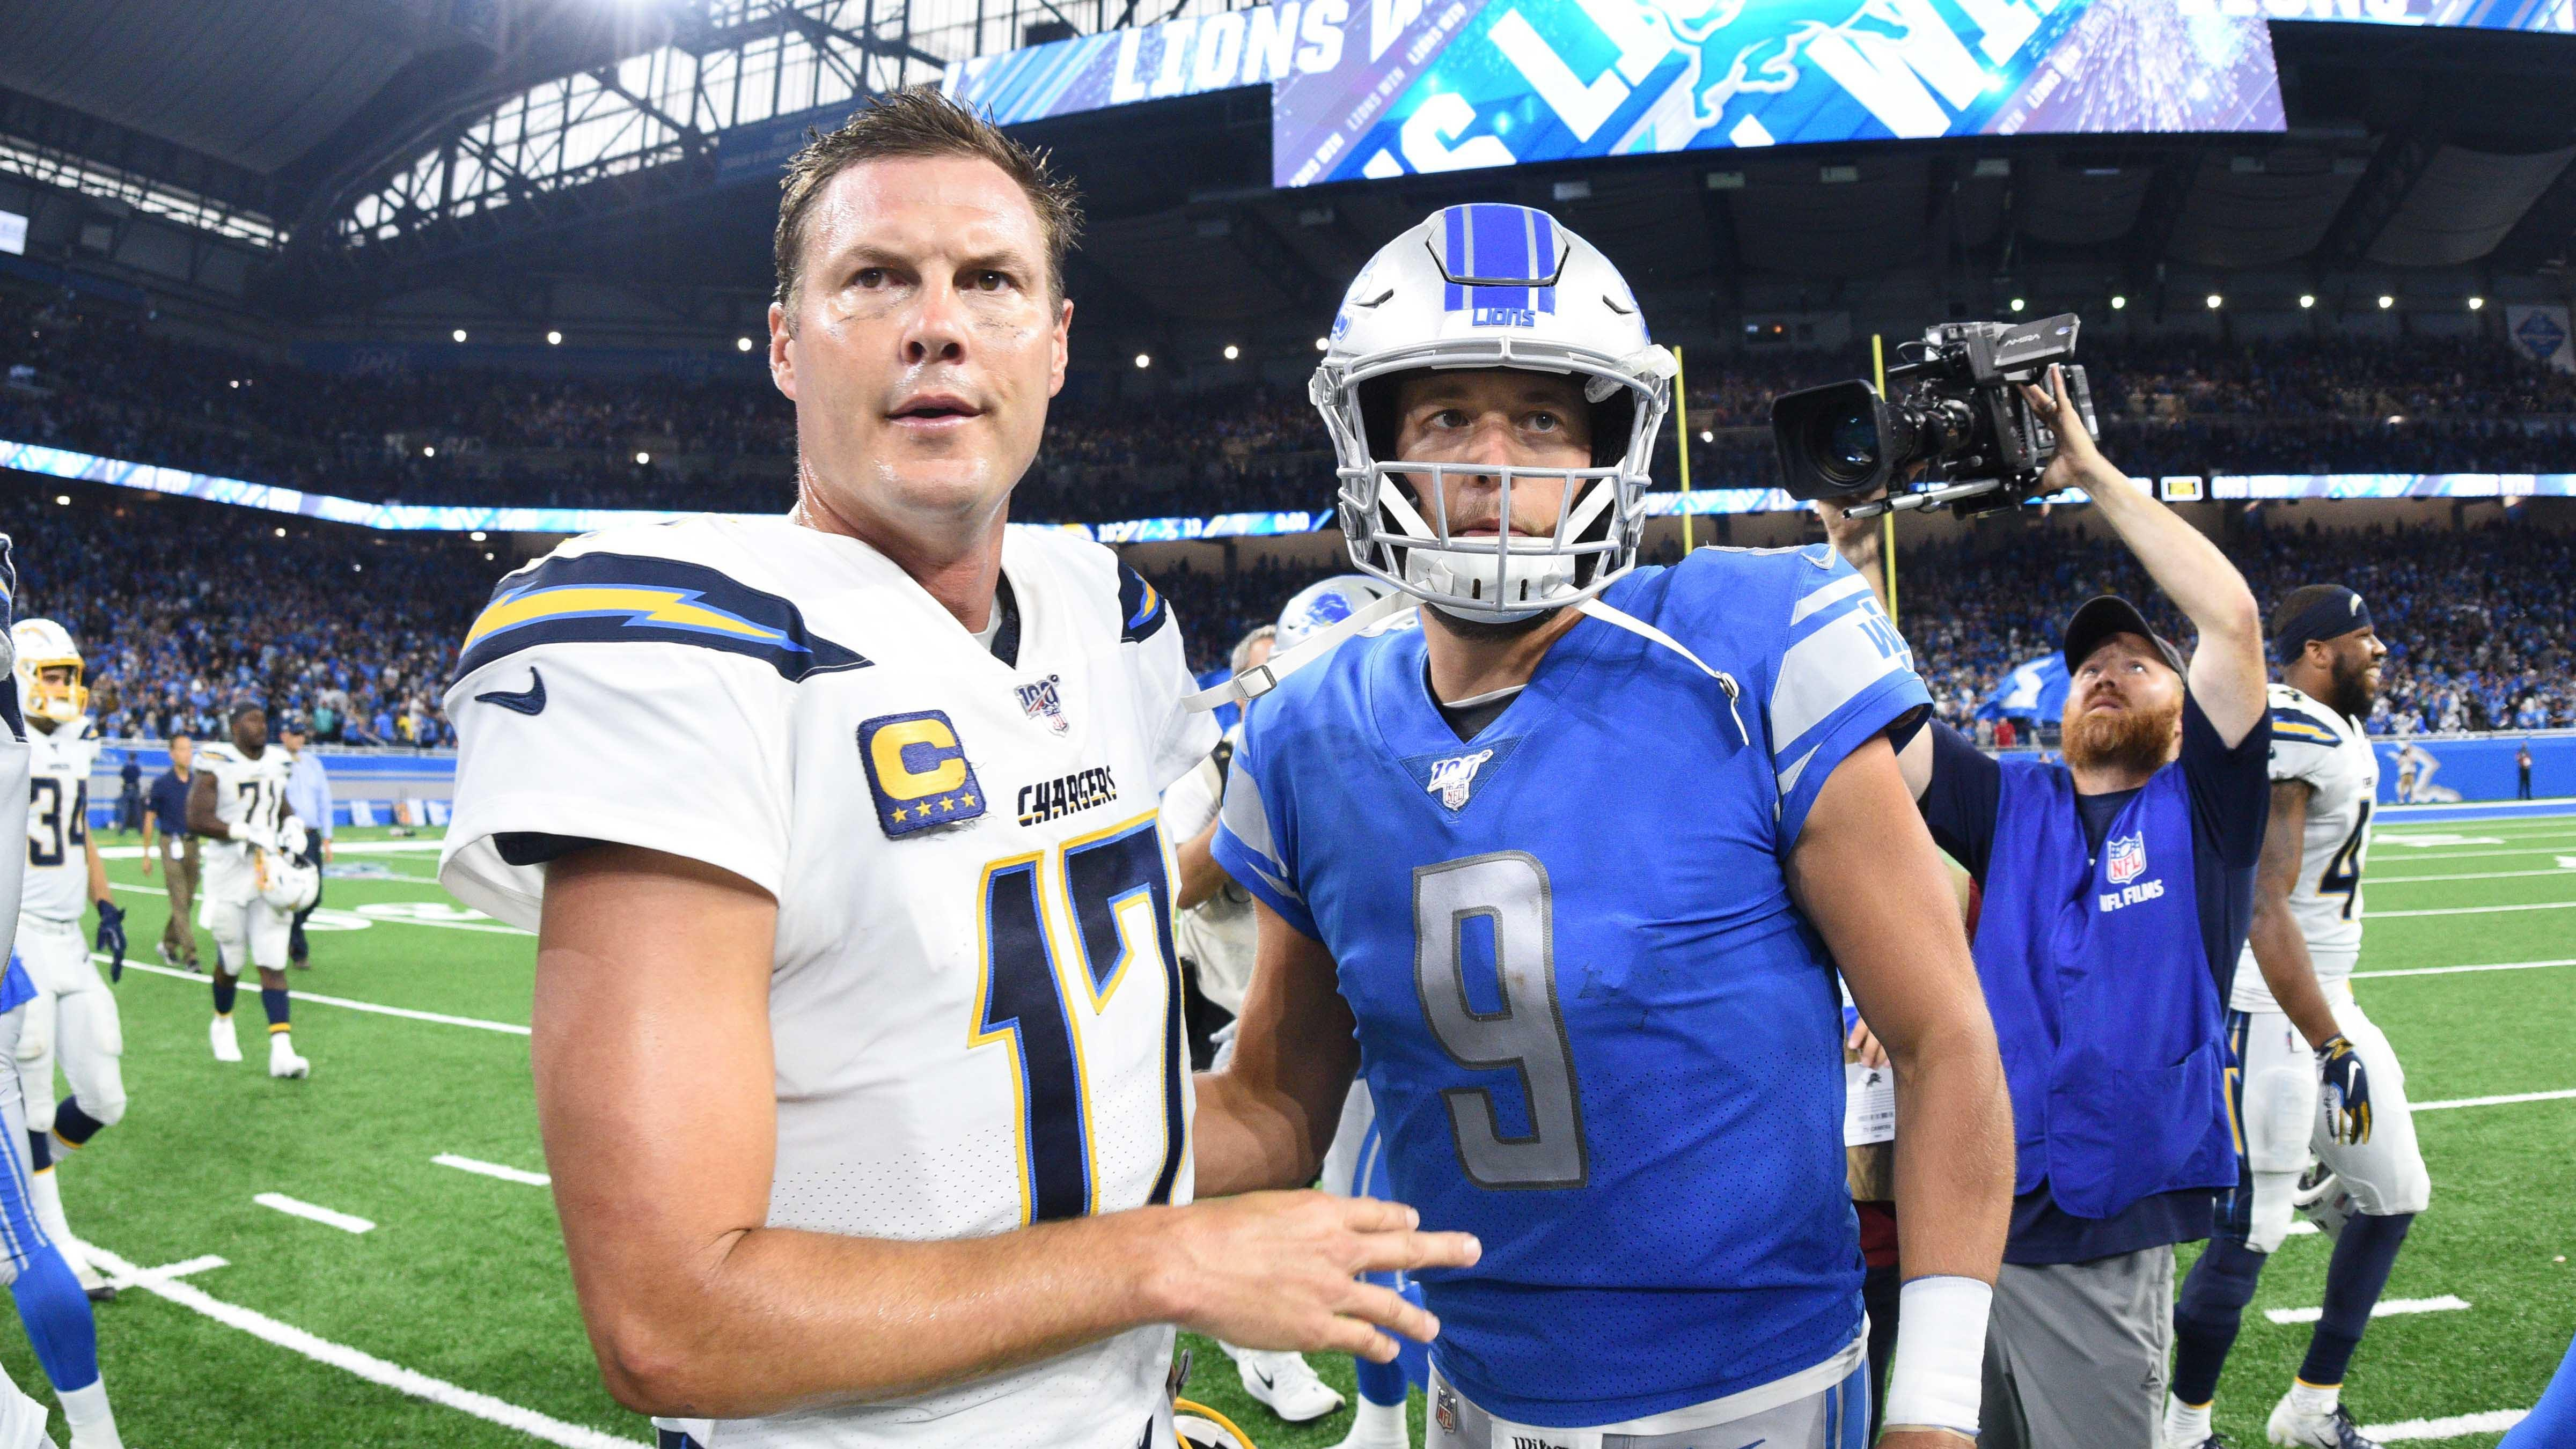 Los Angeles Chargers quarterback Philip Rivers and Detroit Lions quarterback Matthew Stafford meet after the Lions' 13-10 win at Ford Field, Sept. 15, 2019.